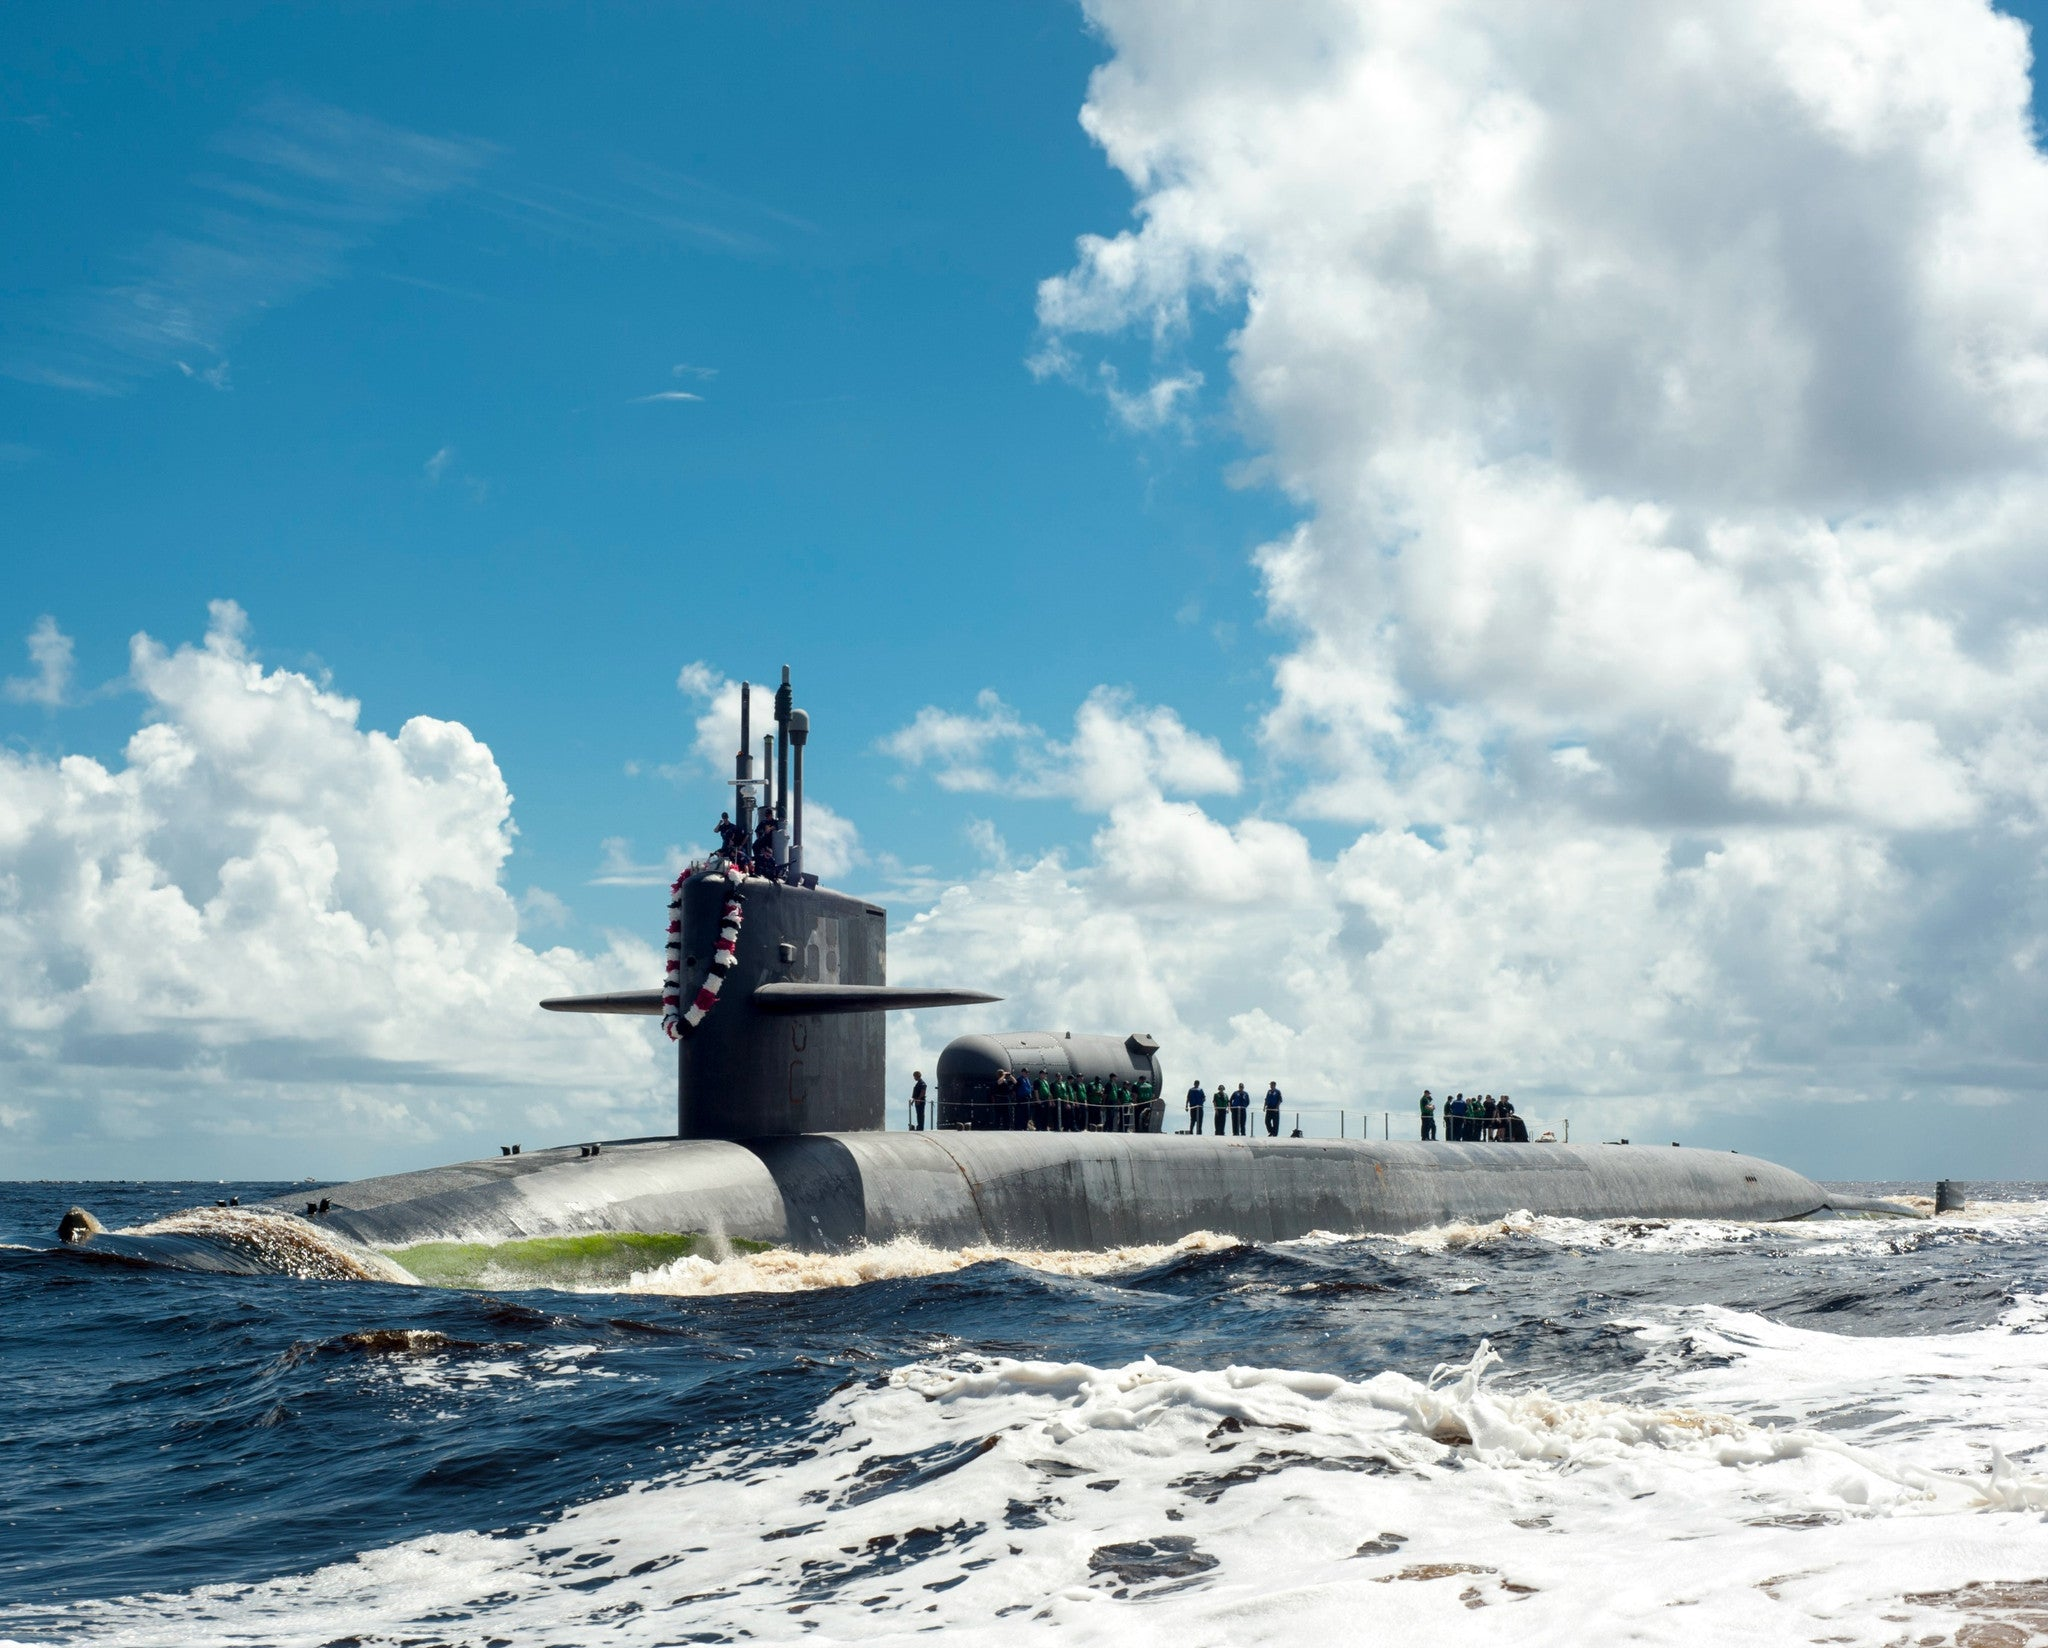 "Submarine USS Georgia SSGN-729 Fernandina Beach, FL July 15, 2012 - 8 x 10"" Photograph"